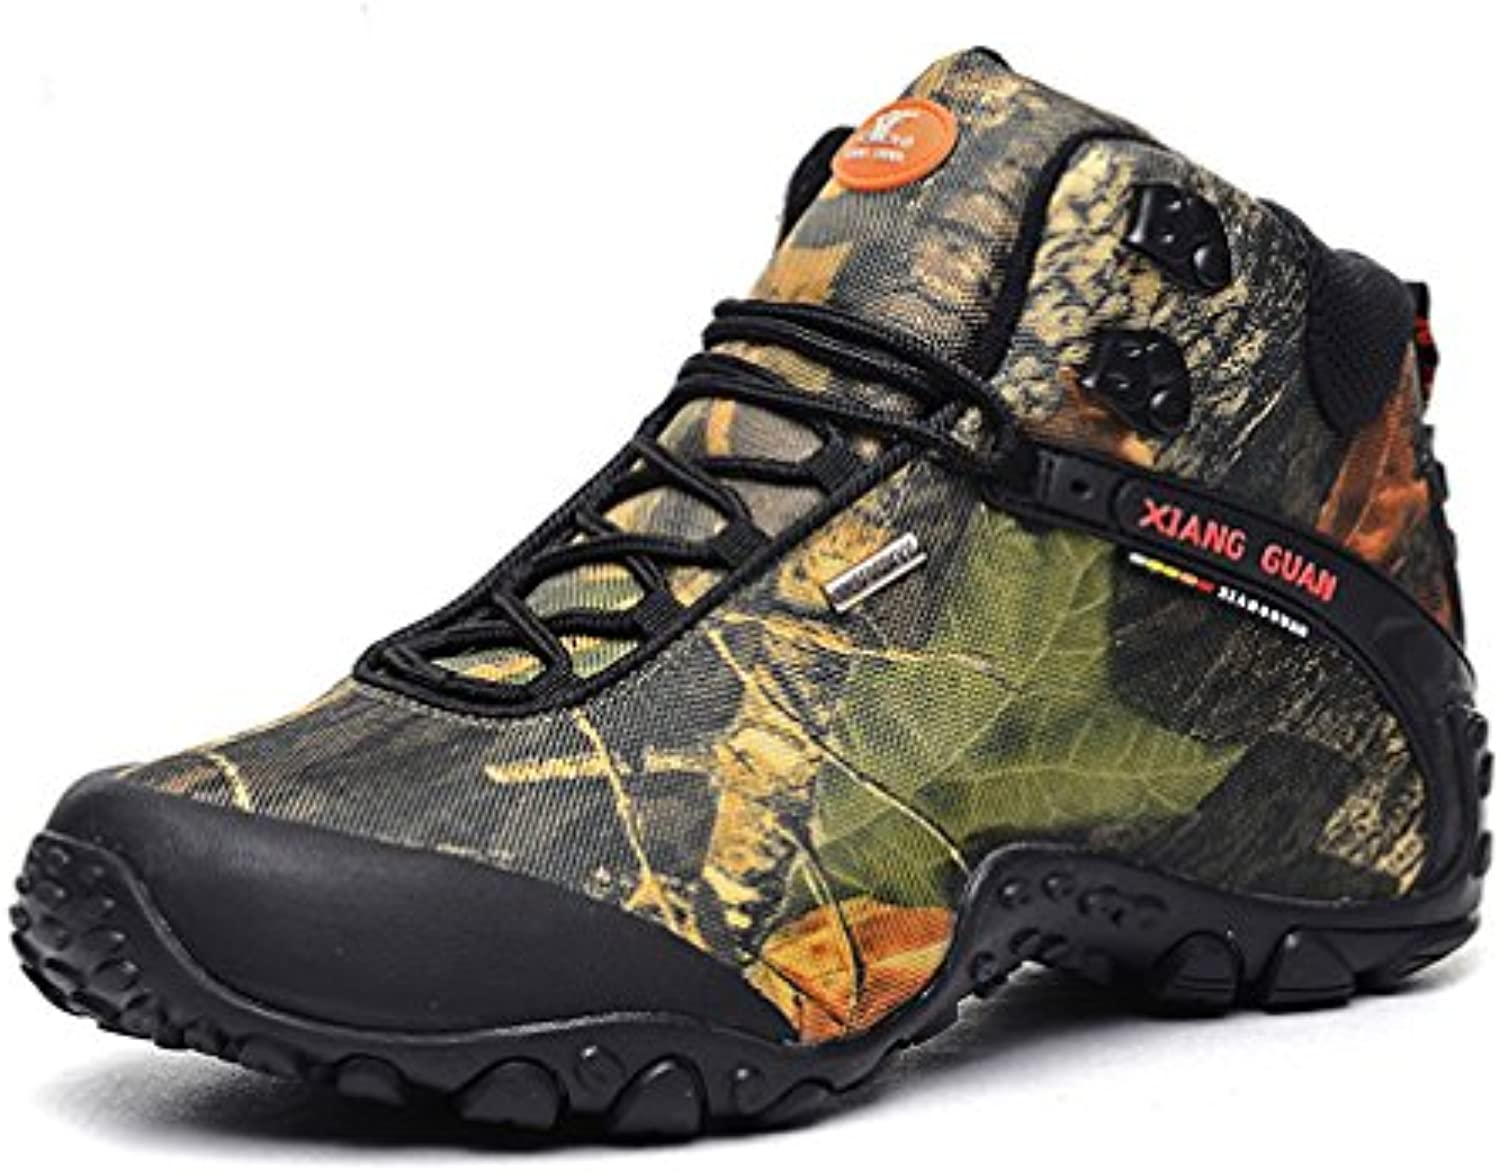 XIANG GUANNew,fashion,functional,professional,outdoor,sport Style - Zapatillas altas hombre